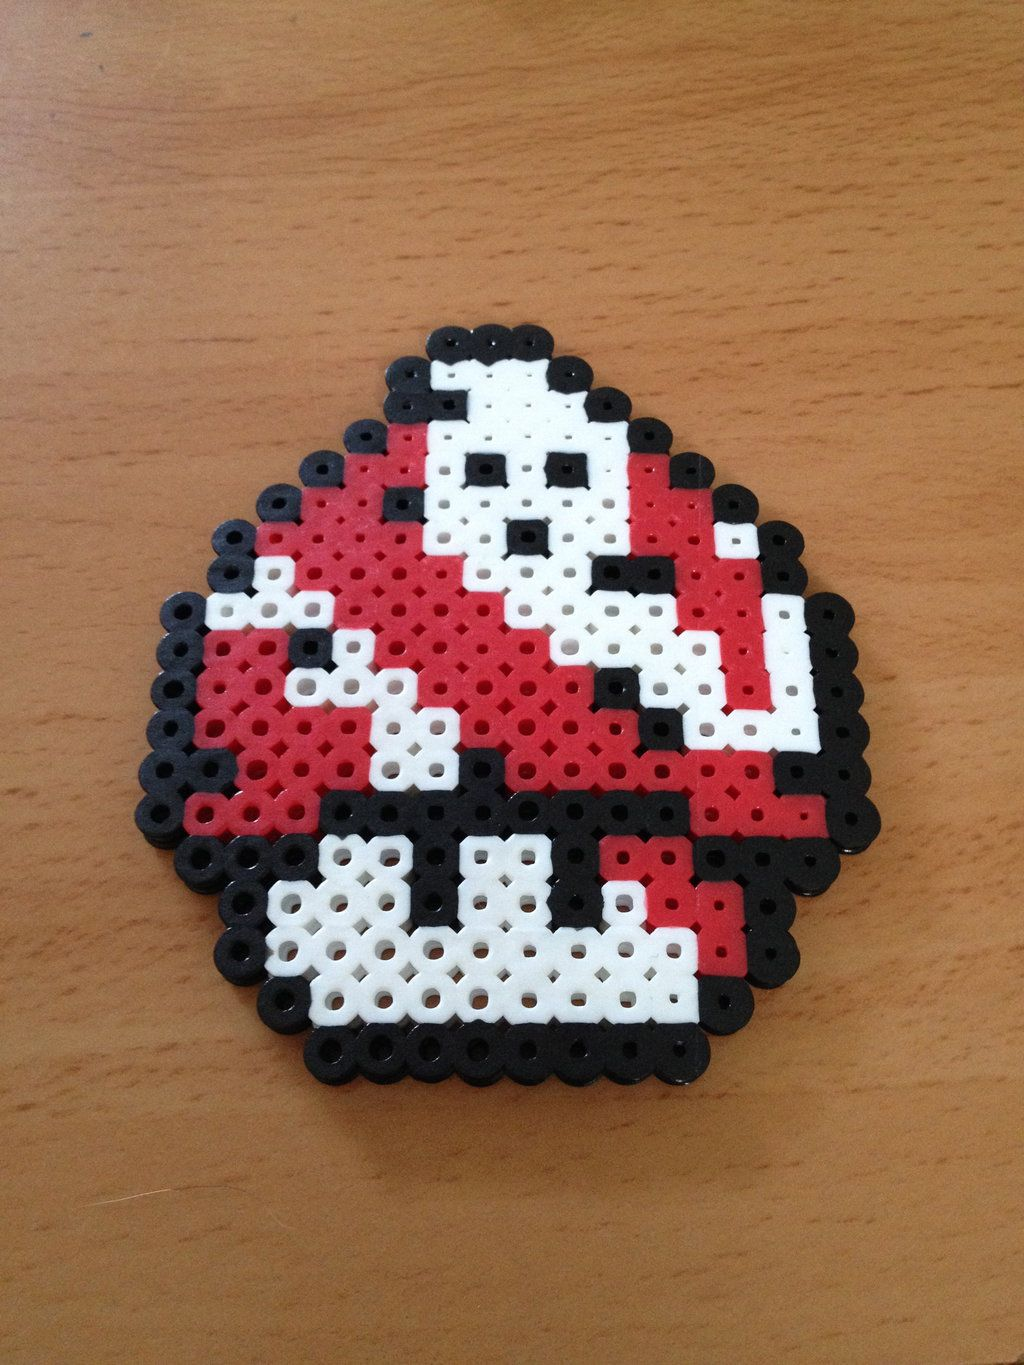 20 Ghostbusters Perler Bead Patterns Pictures And Ideas On Meta